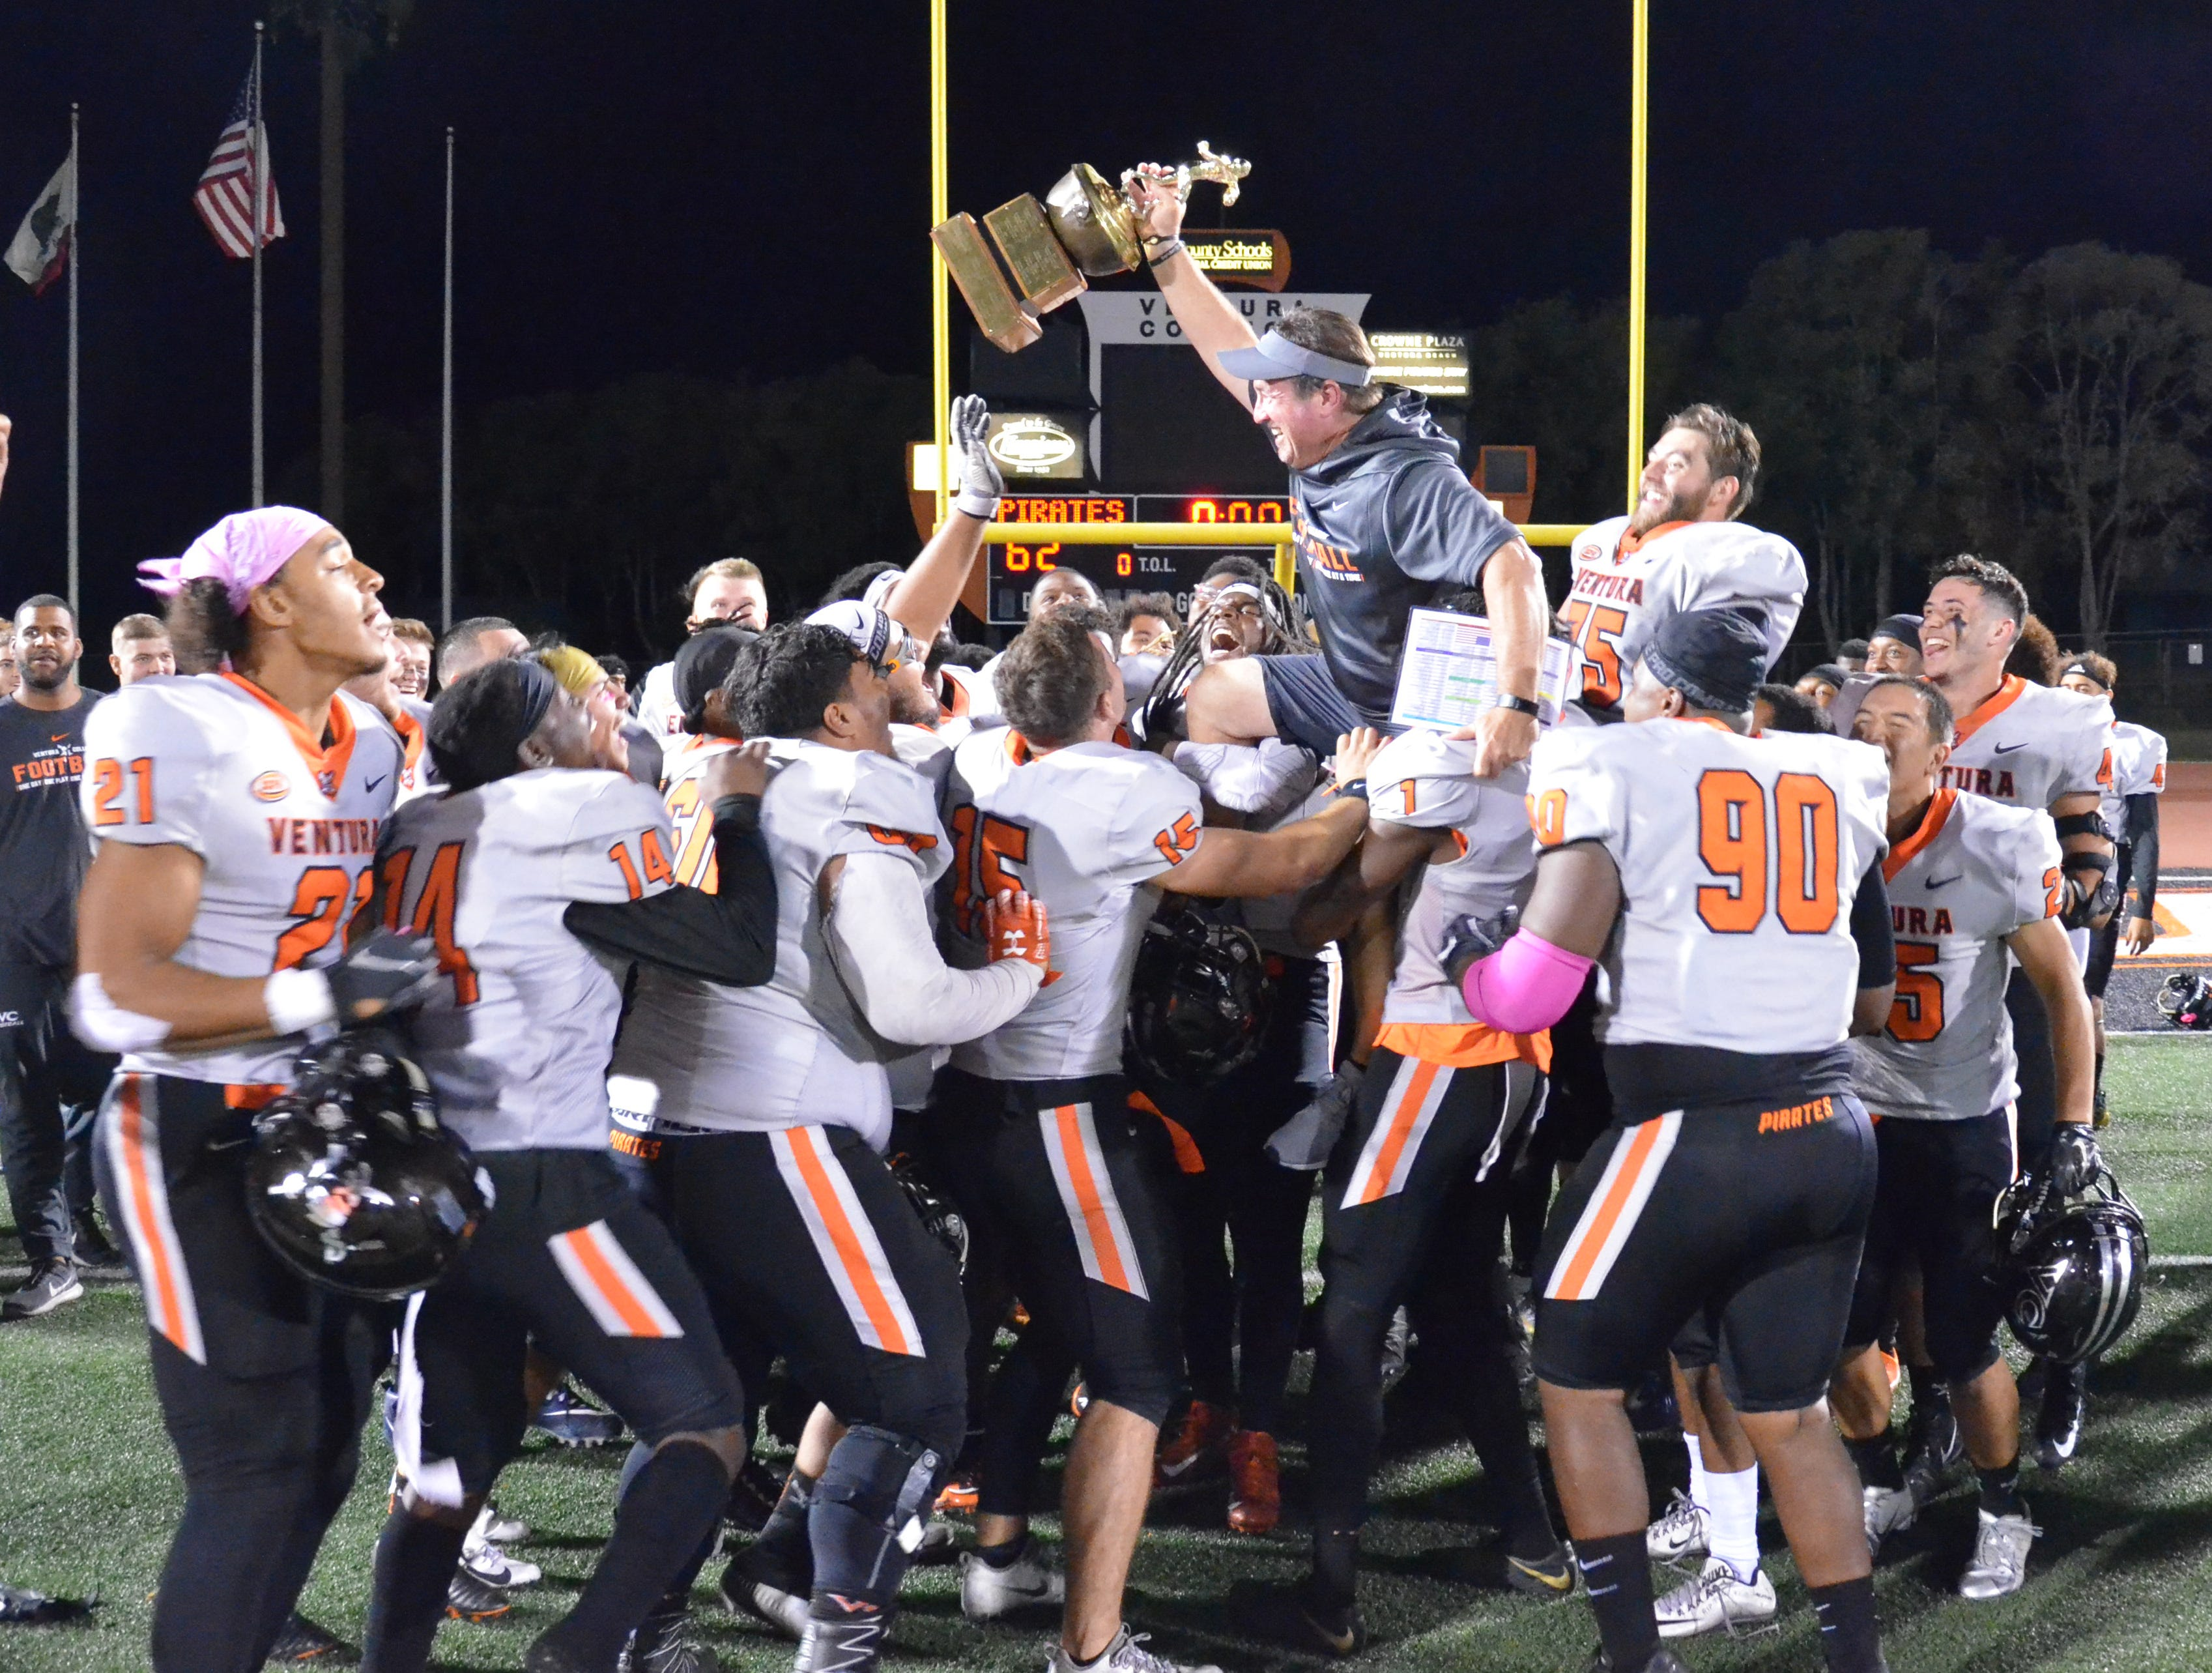 The Ventura College football team carries head coach Steve Mooshagian off the field after the Pirates' 62-7 win over Moorpark College in the 51st Citrus Cup game on Saturday night at the VC Sportsplex.